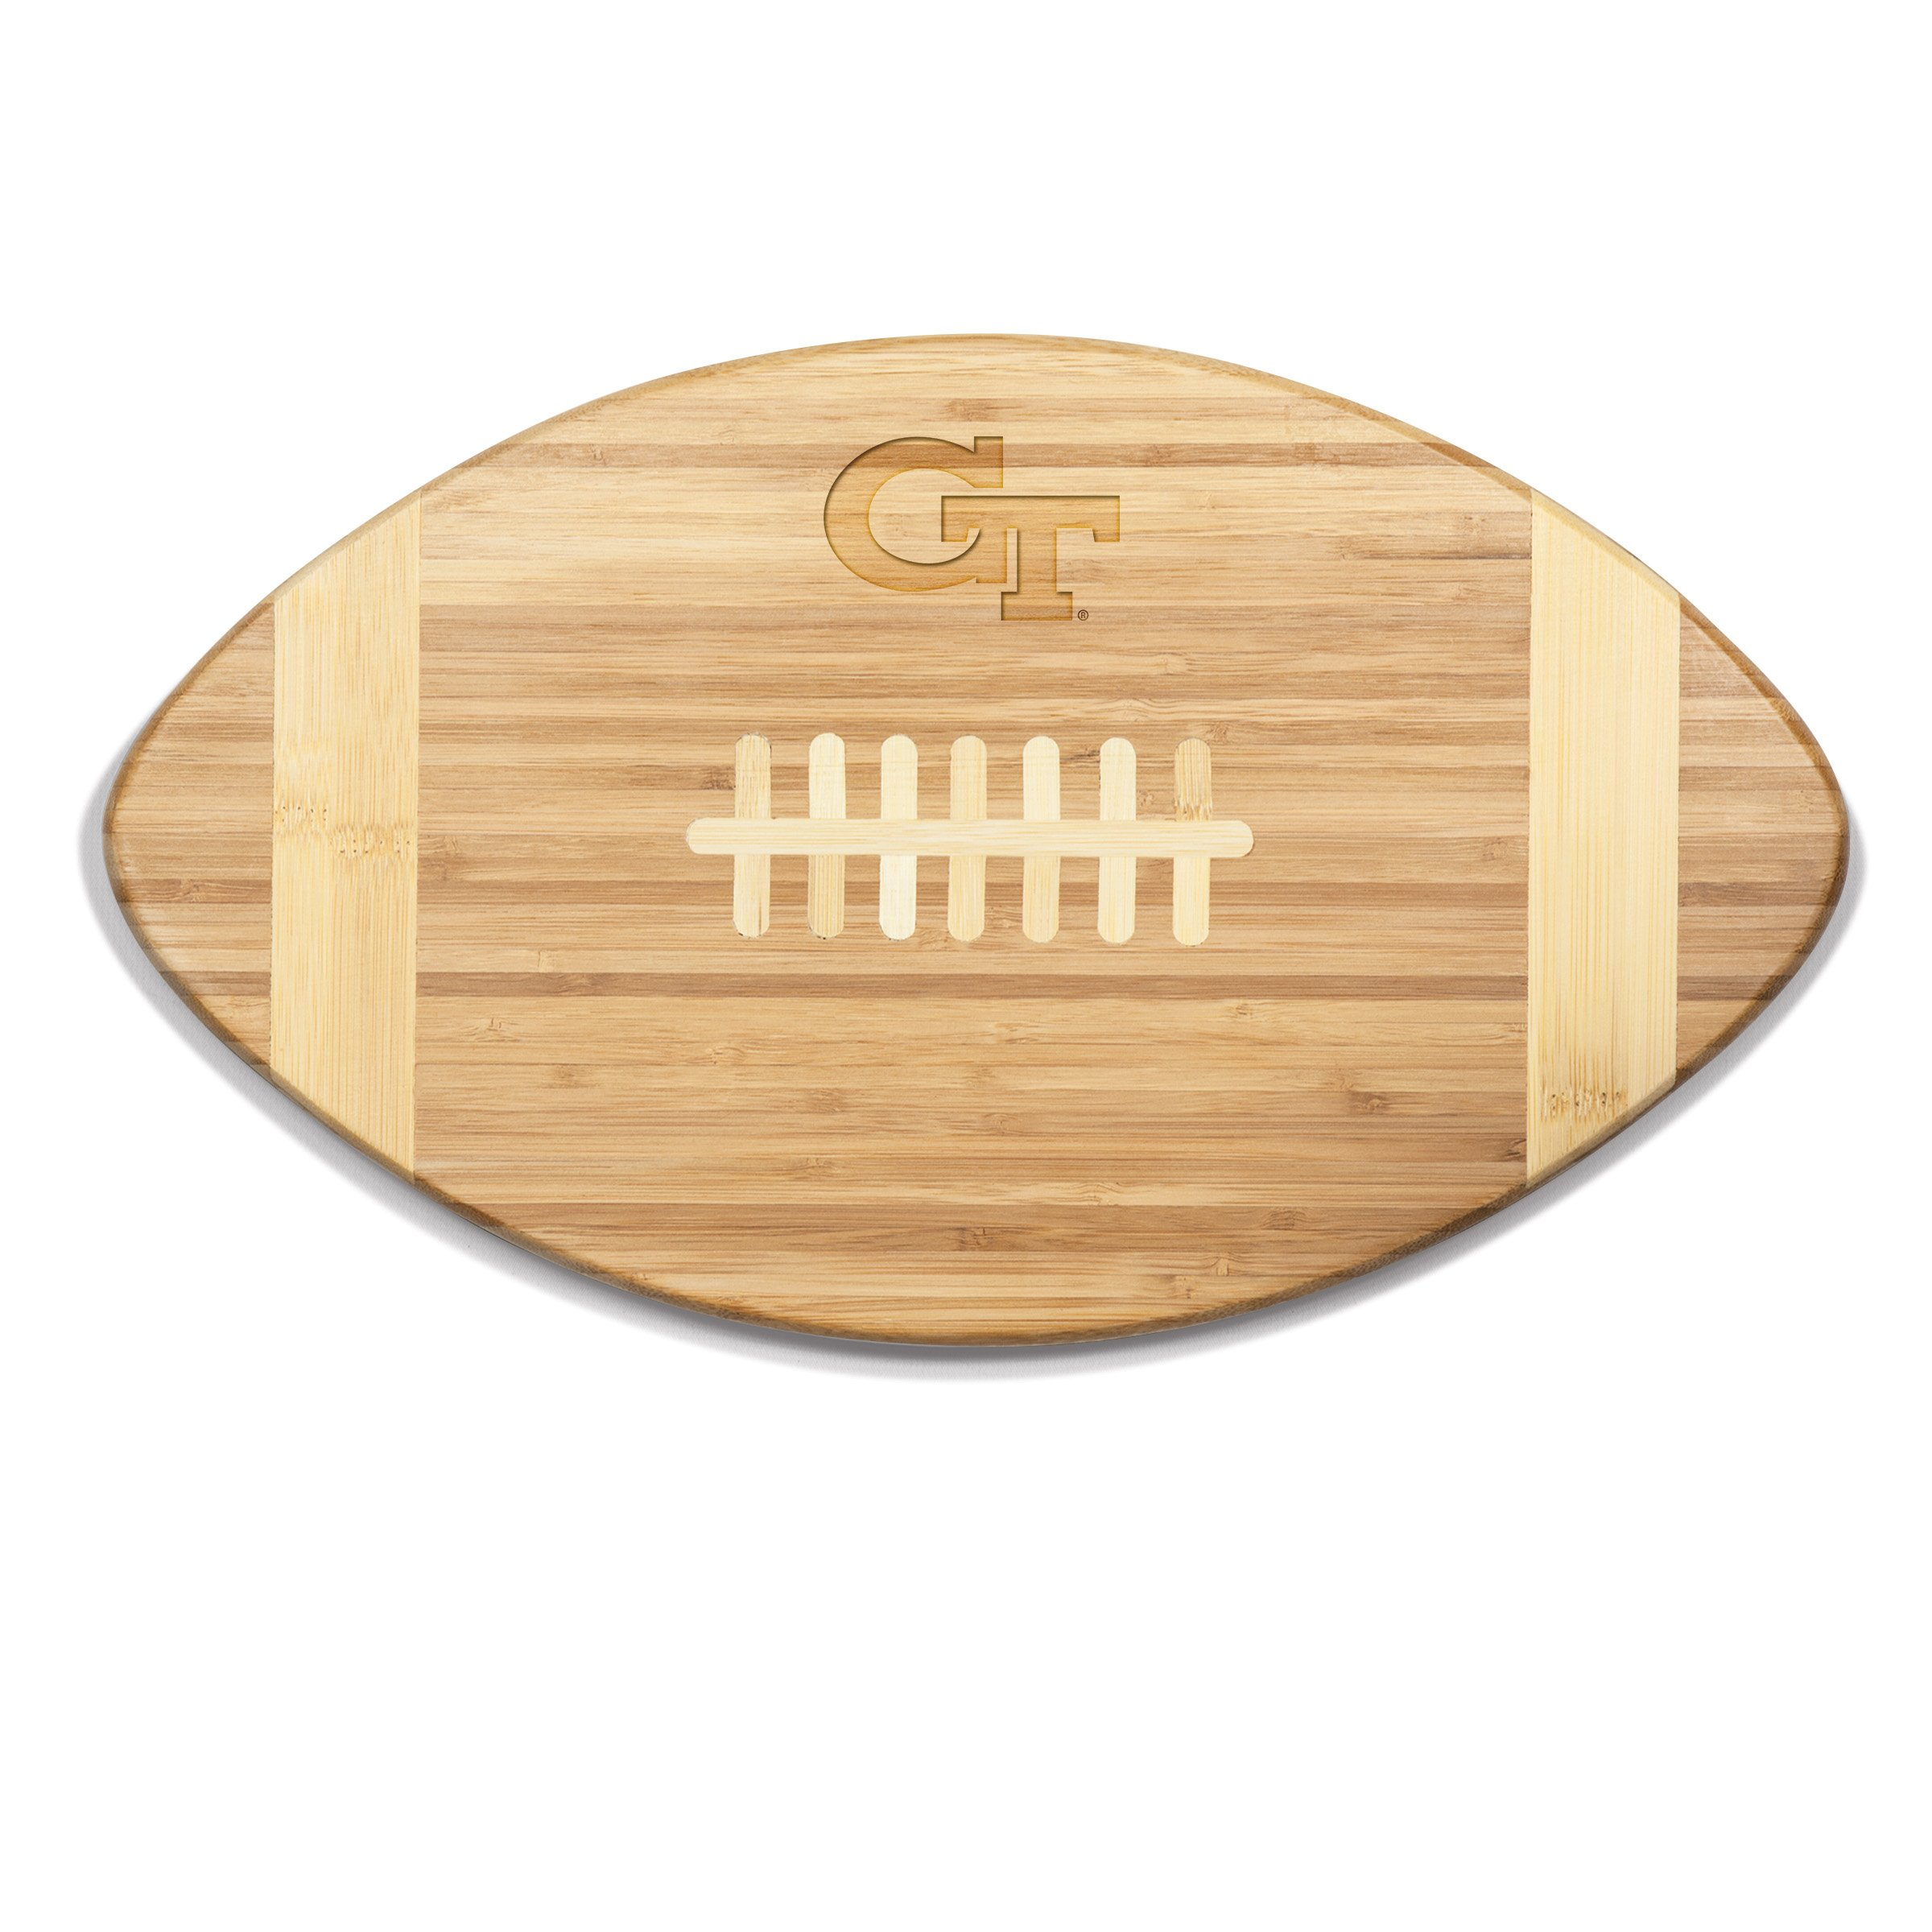 NCAA Georgia Tech Yellow Jackets Touchdown! Bamboo Cutting Board, 16-Inch by PICNIC TIME (Image #1)